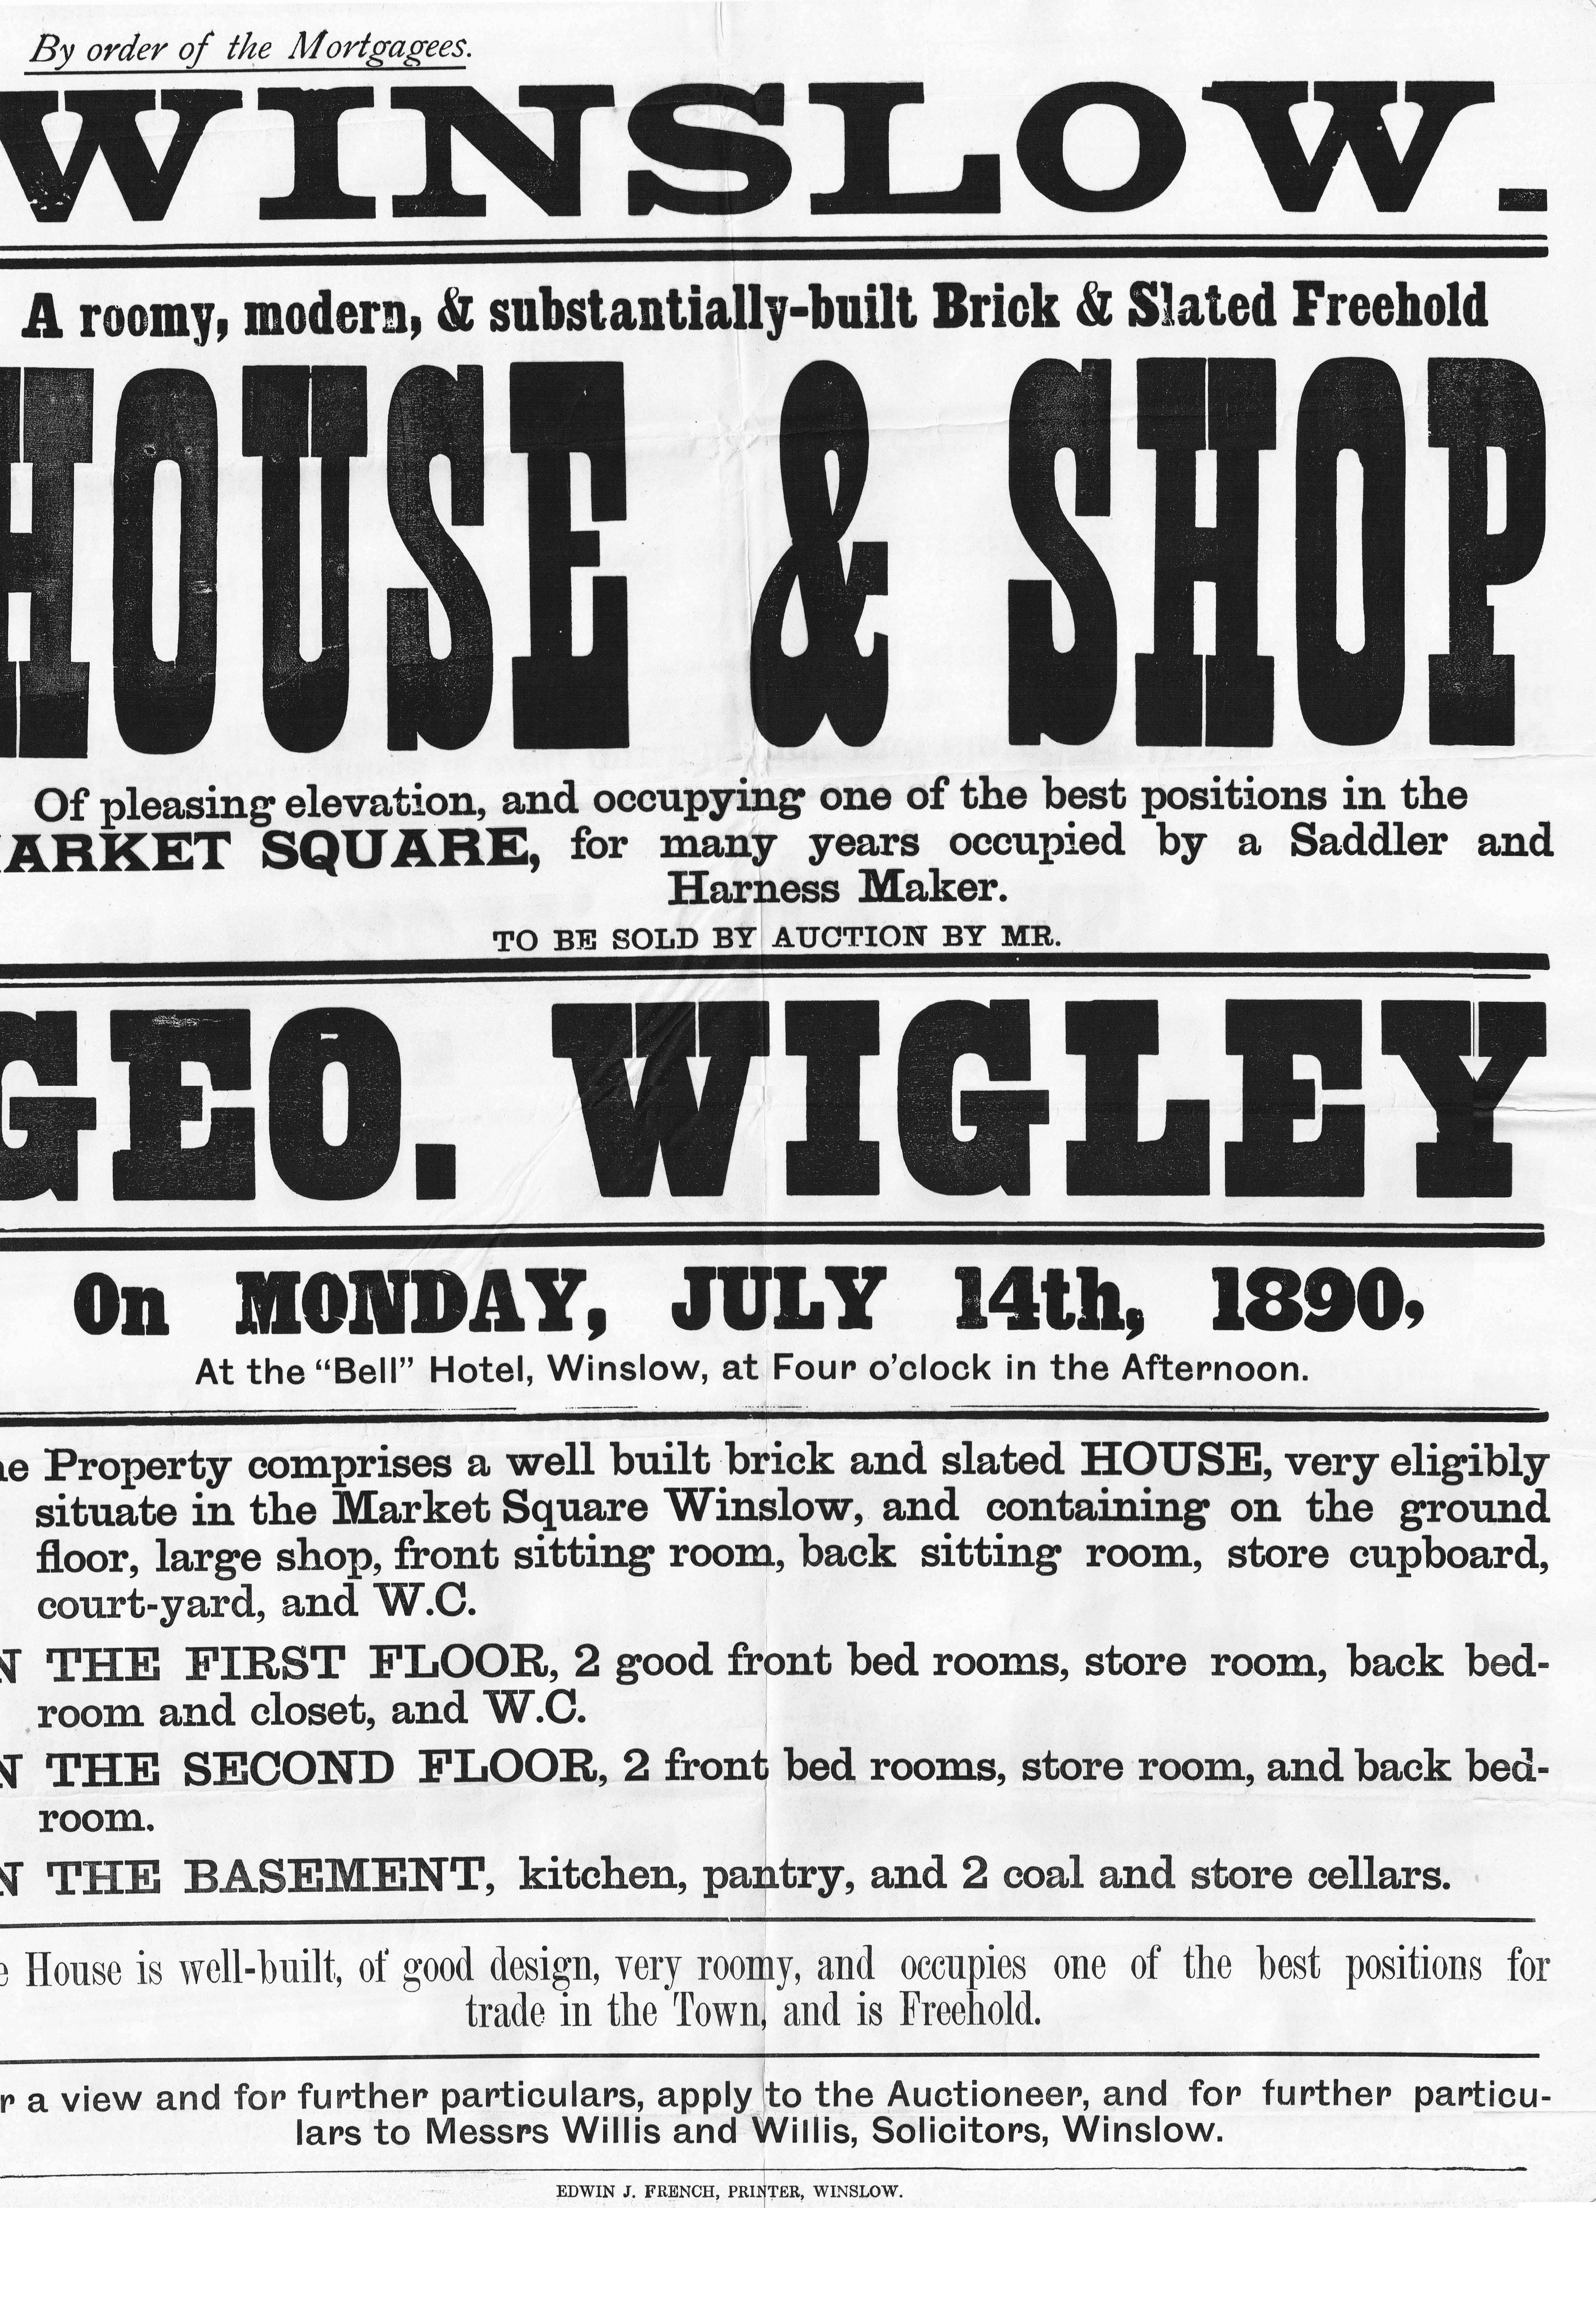 Sale poster, 1890